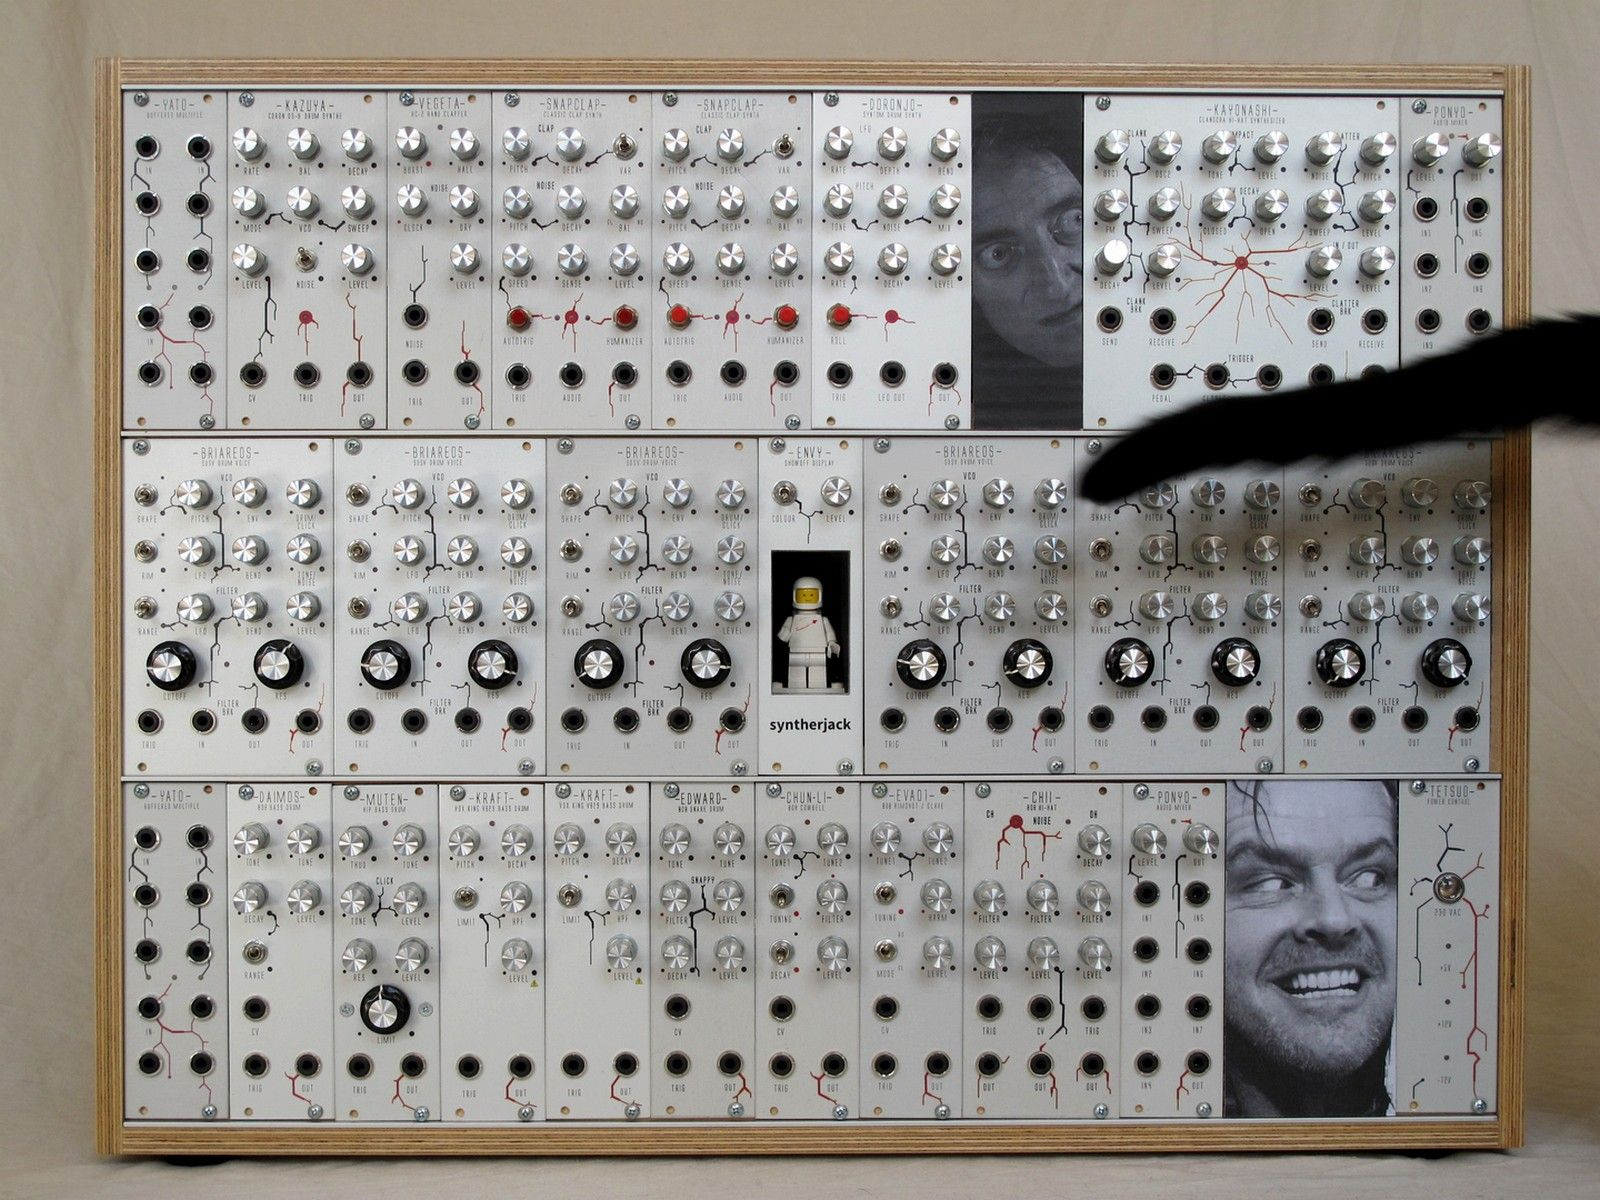 Modular synth photo with DIY eurorack blanks   SyntherJack